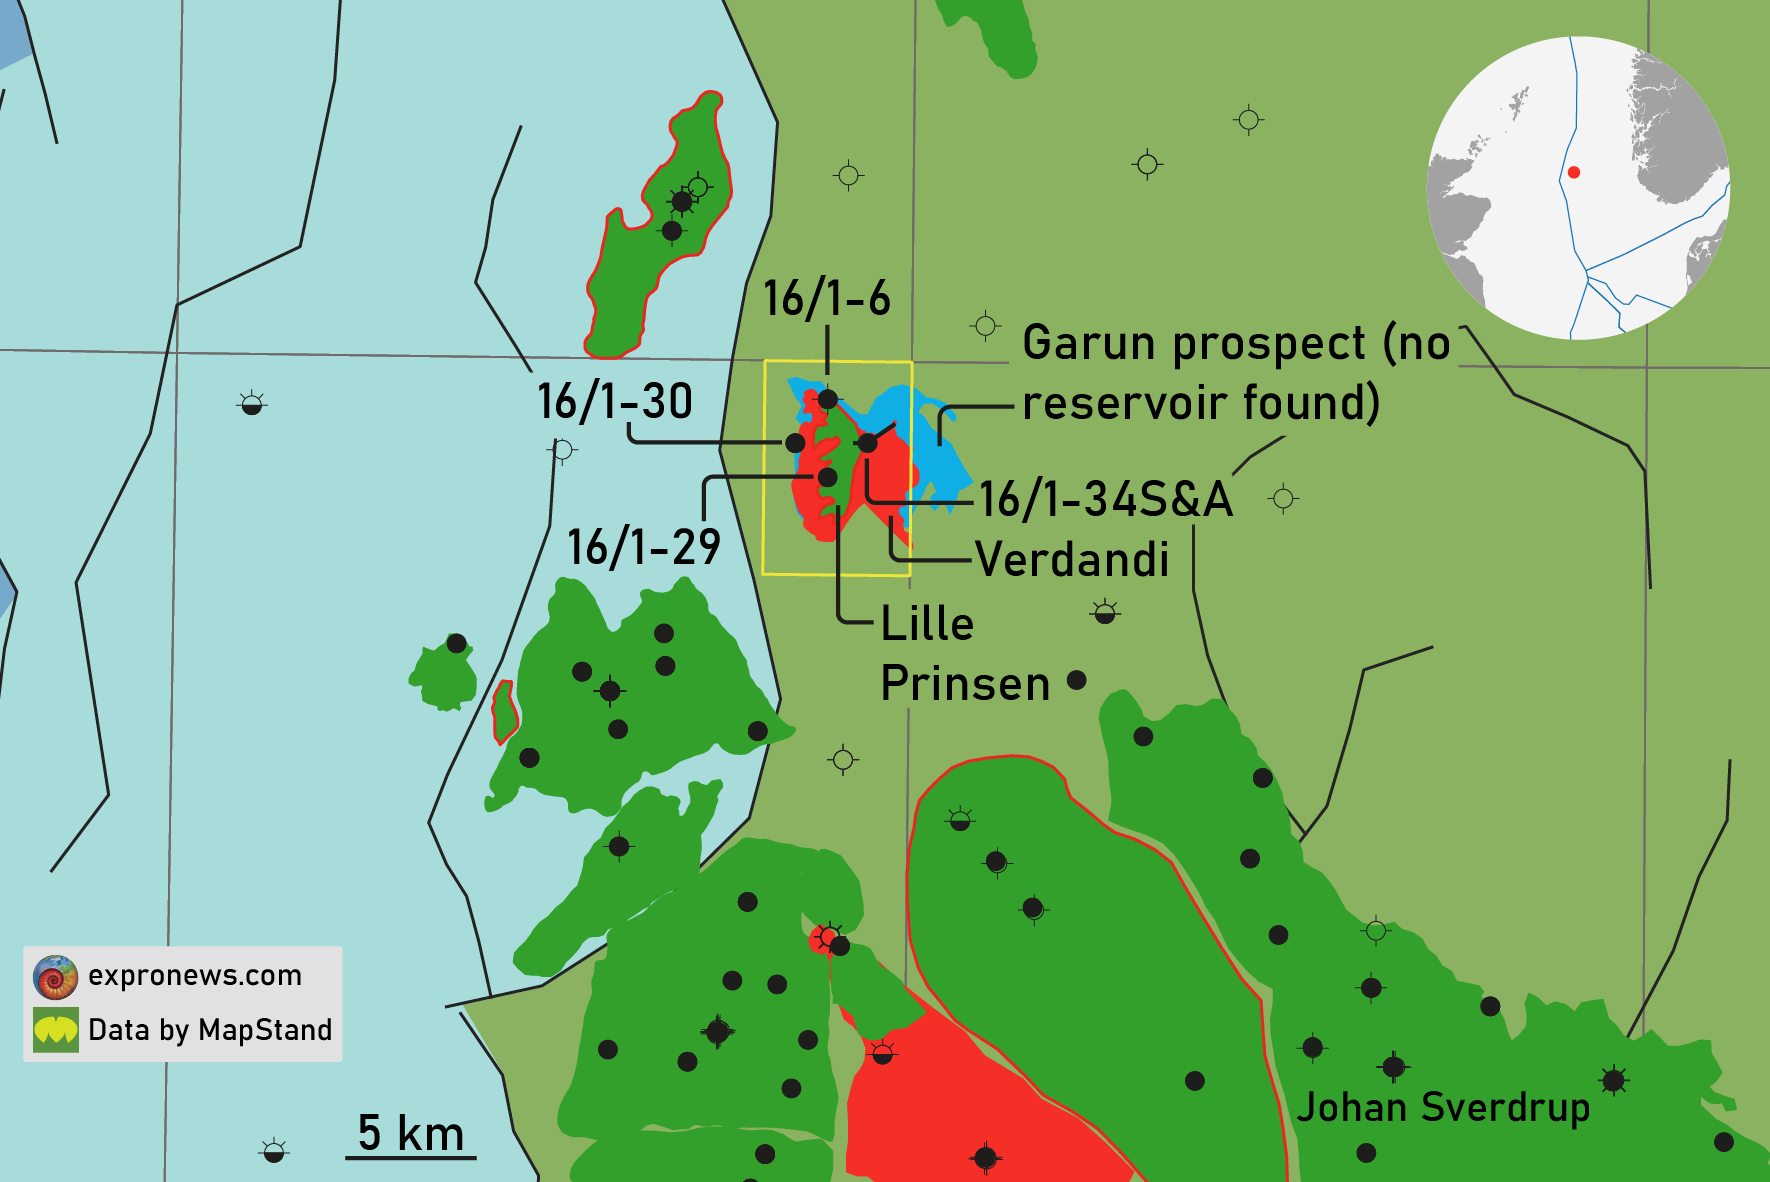 Lille Prinsen oil find will be closely watched by UK Mid North Sea High operators